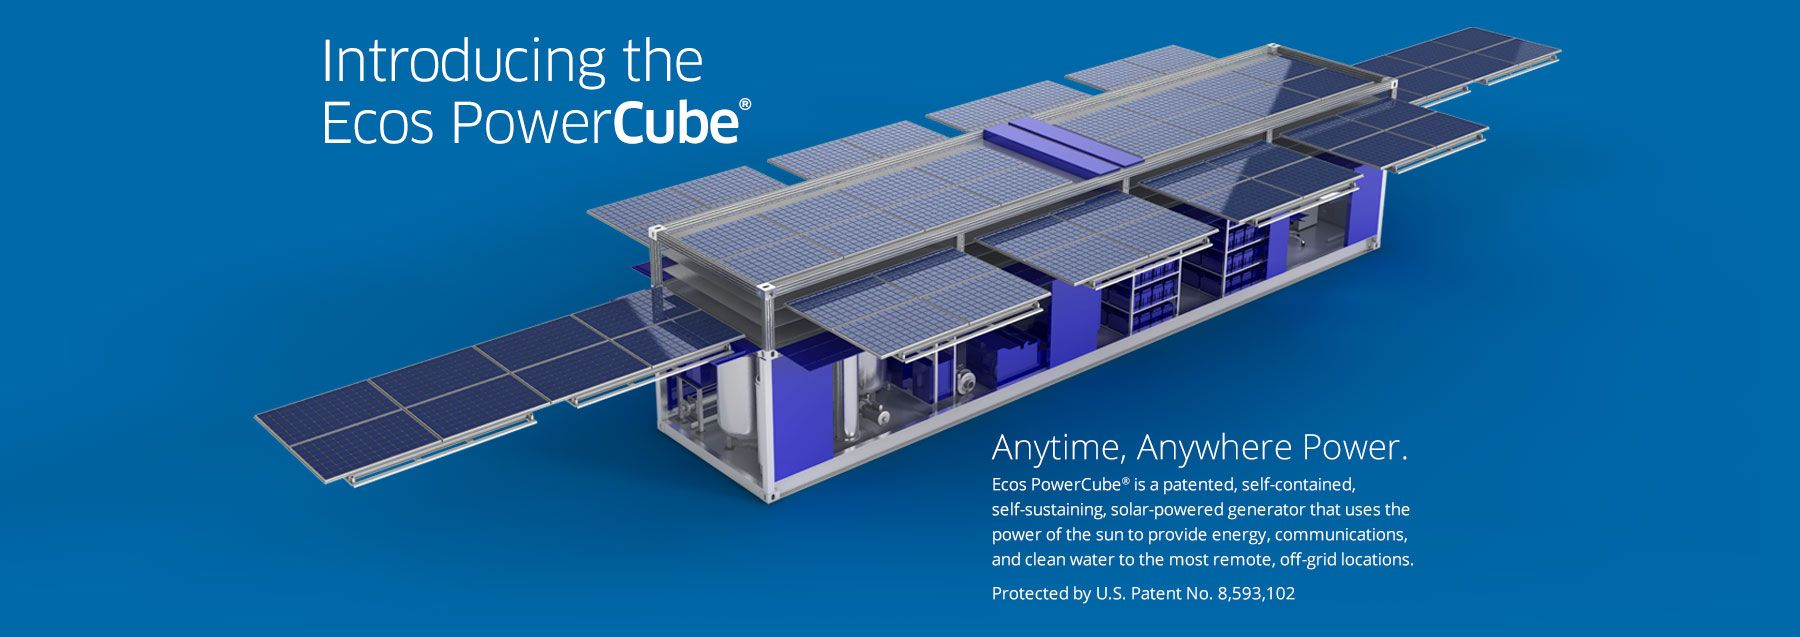 Amazing Shipping Container Transforms Into 15 000 Watt Pop Up Solar Power Station With Wifi Solar Powered Generator Solar Power Station Solar Energy Diy